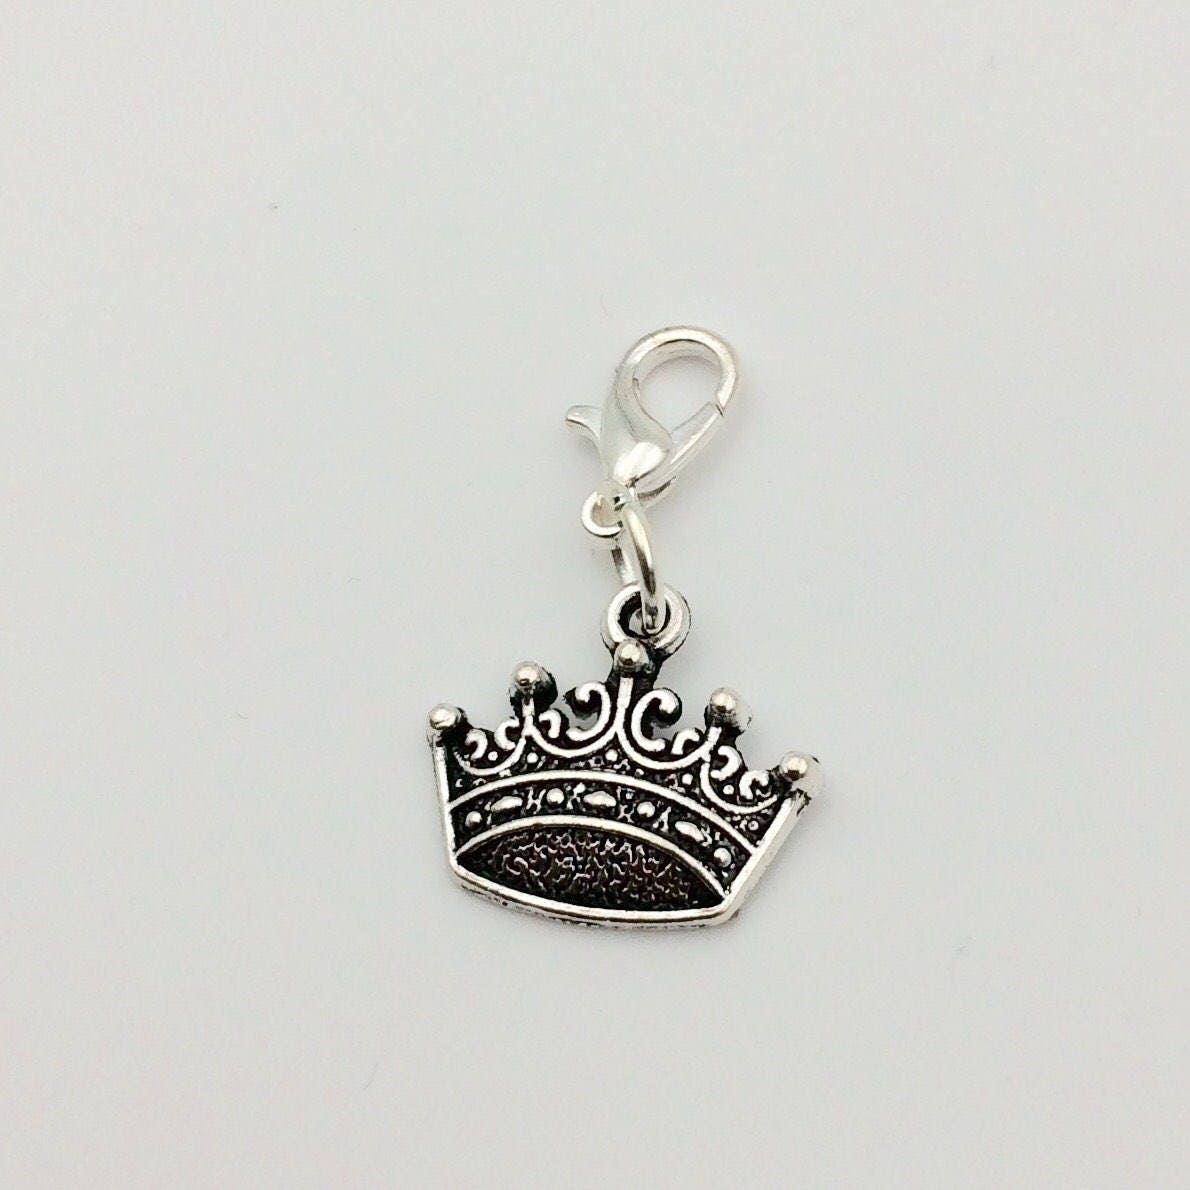 JW Charm, Dangle Crown, European Style or Lobster Claw, Silver